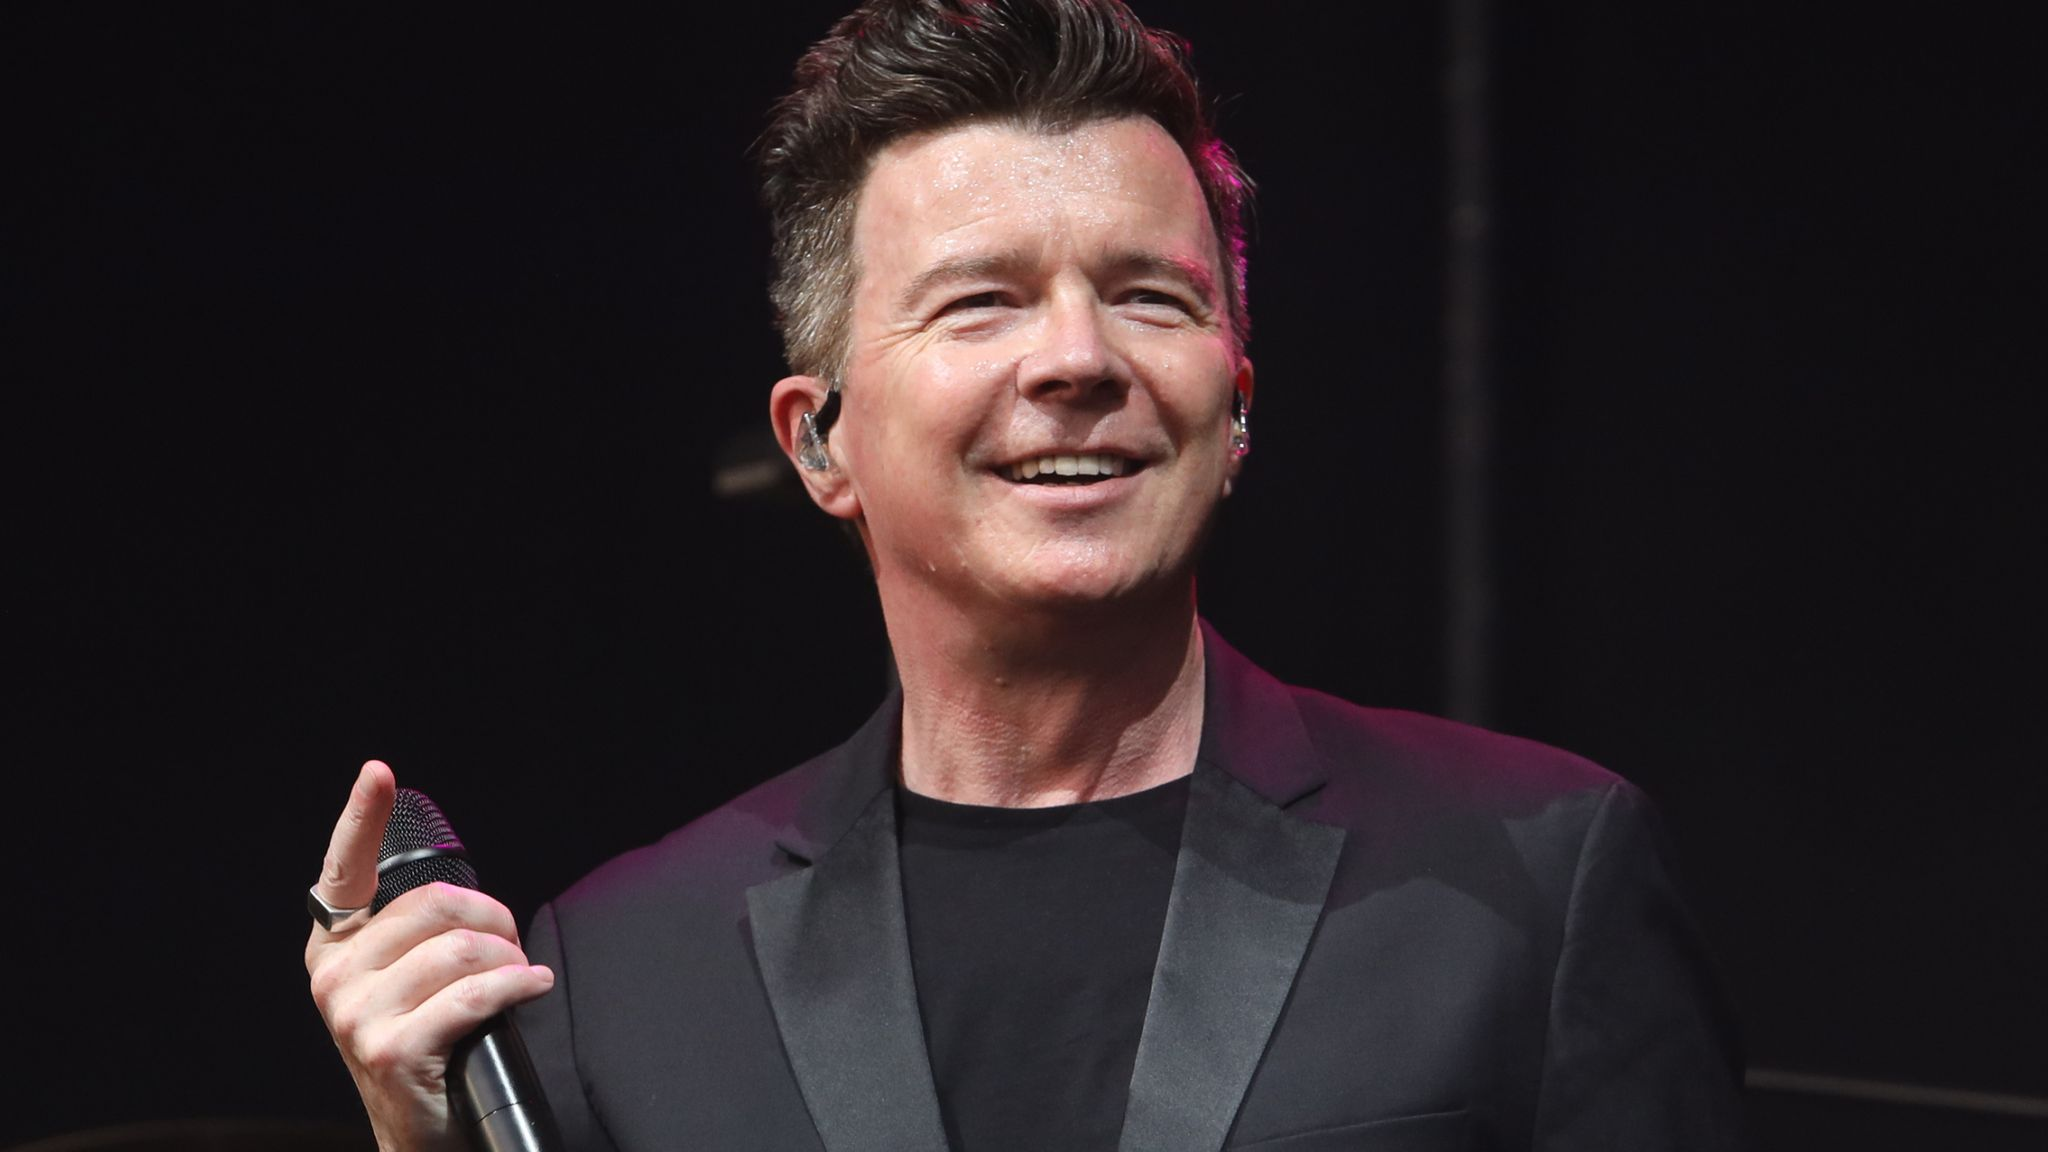 Coronavirus: Rick Astley to play free gig for NHS and emergency